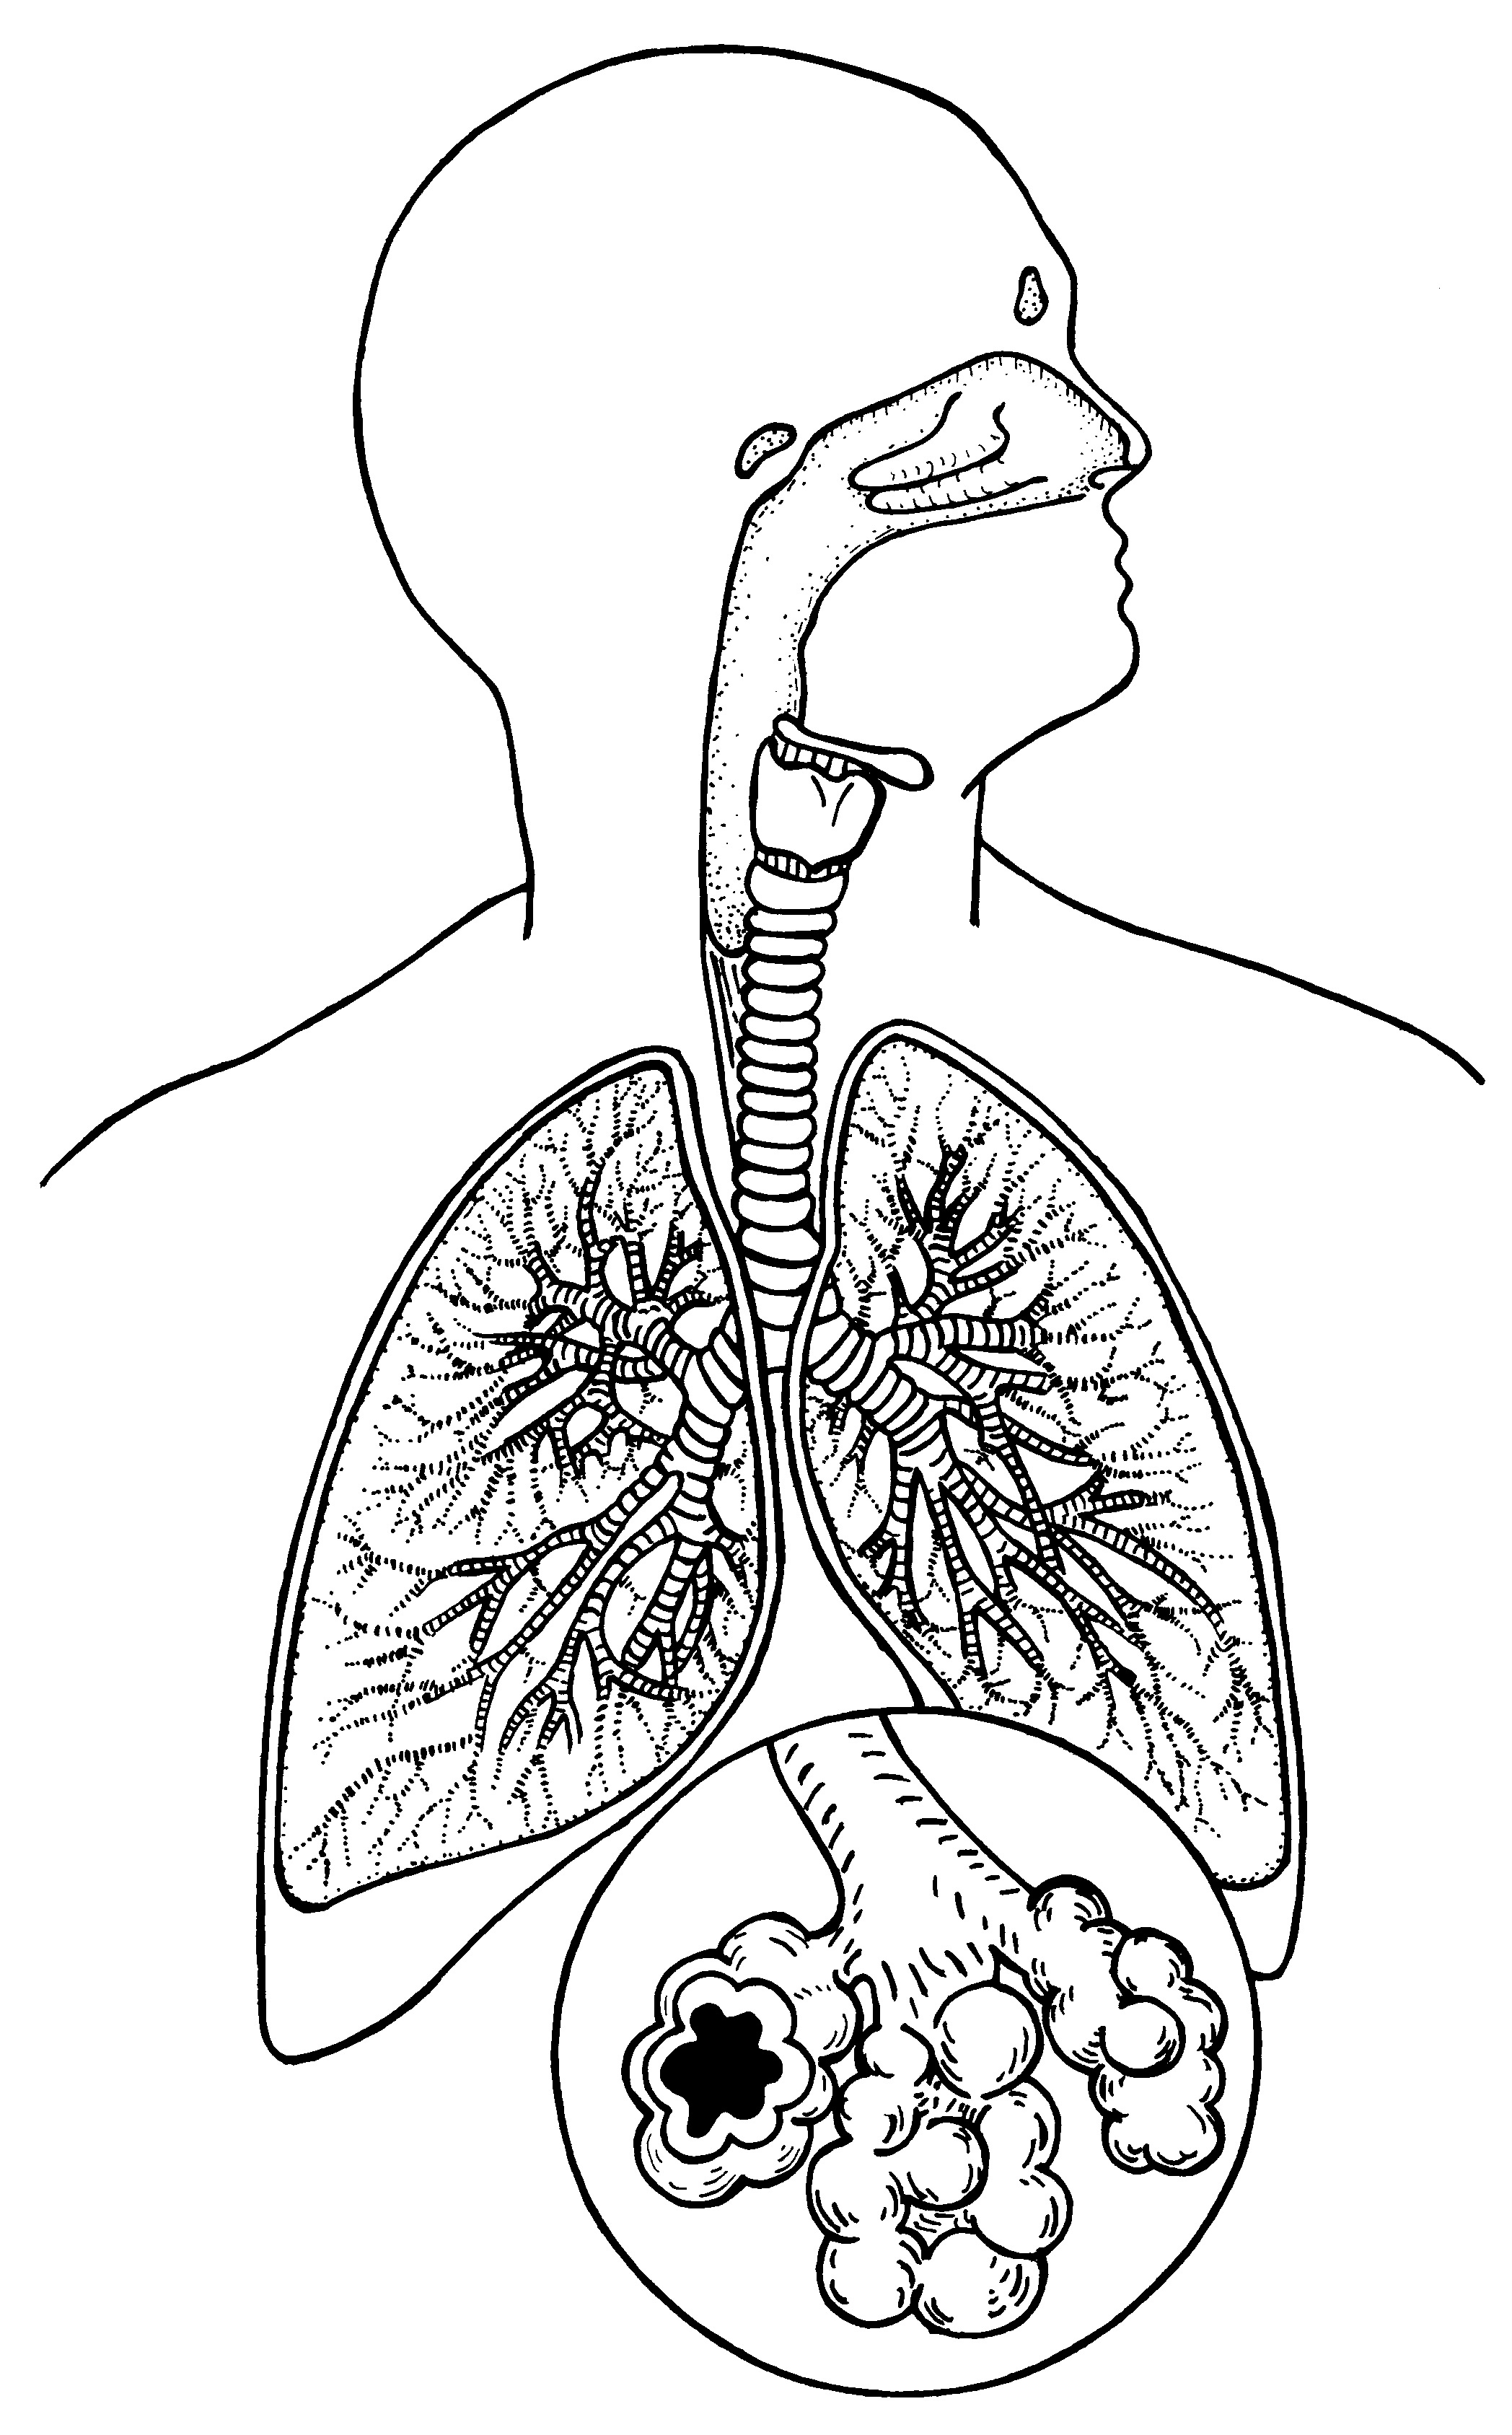 Respiratory System Coloring Sheets To Print Cardiovascular Drawing At GetDrawings